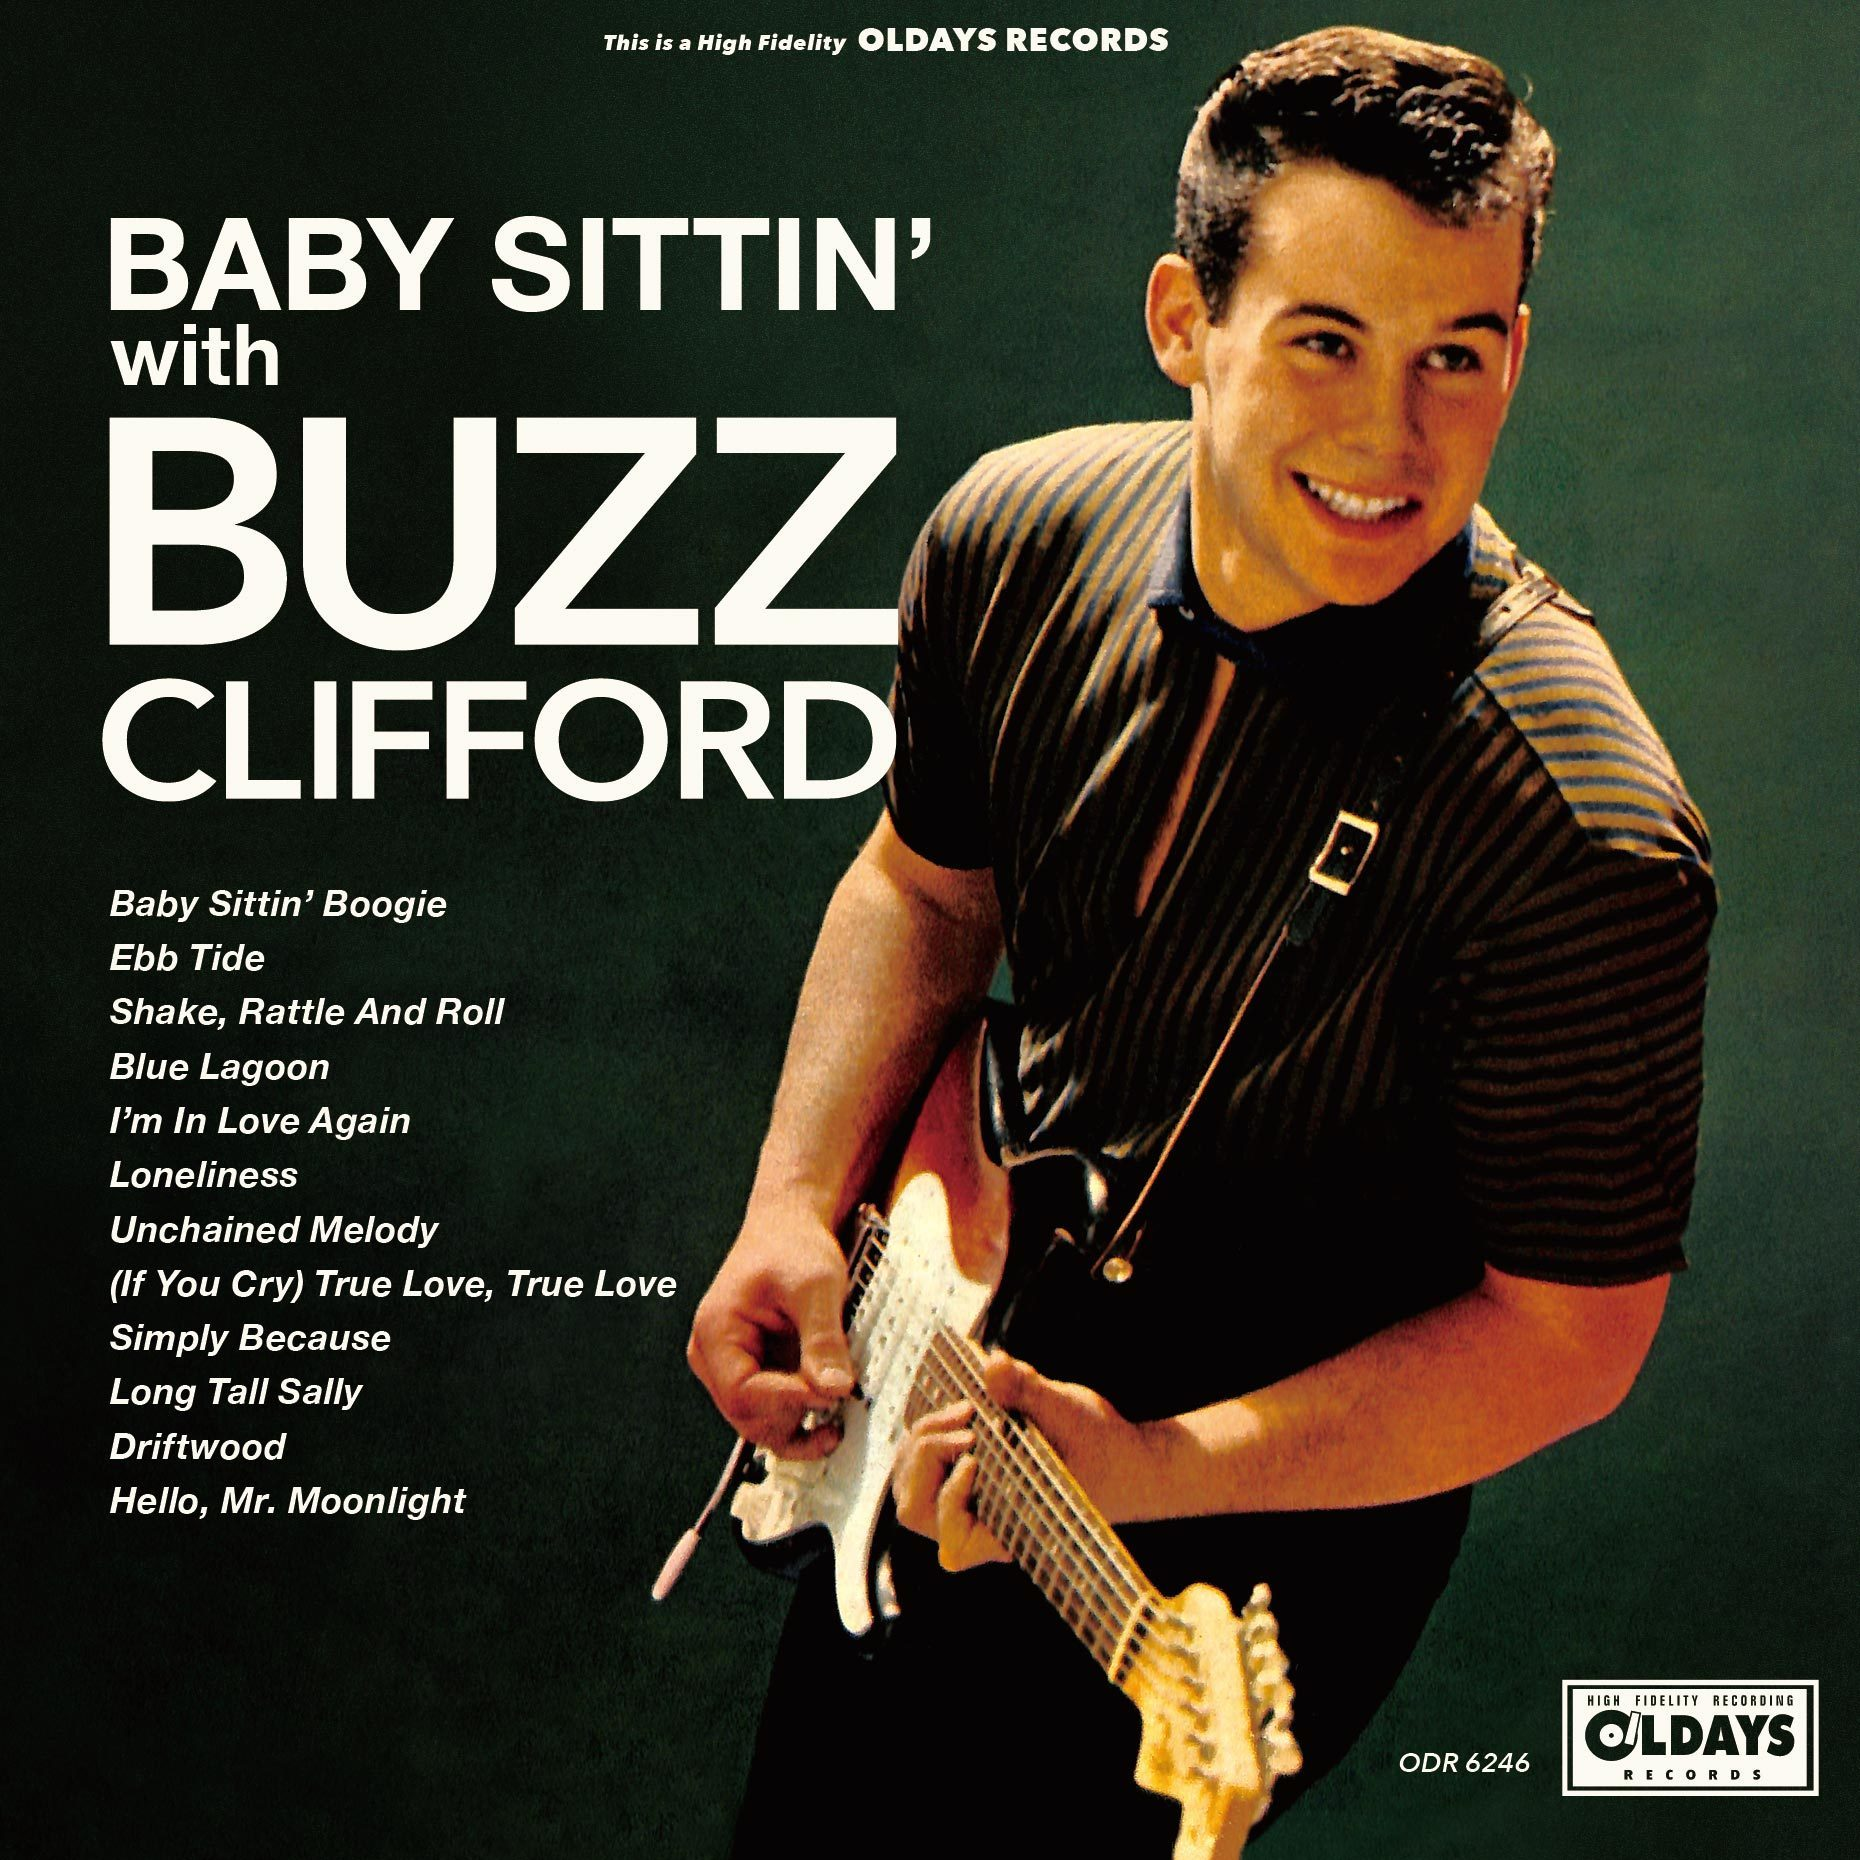 Baby Sittin' with Buzz Clifford